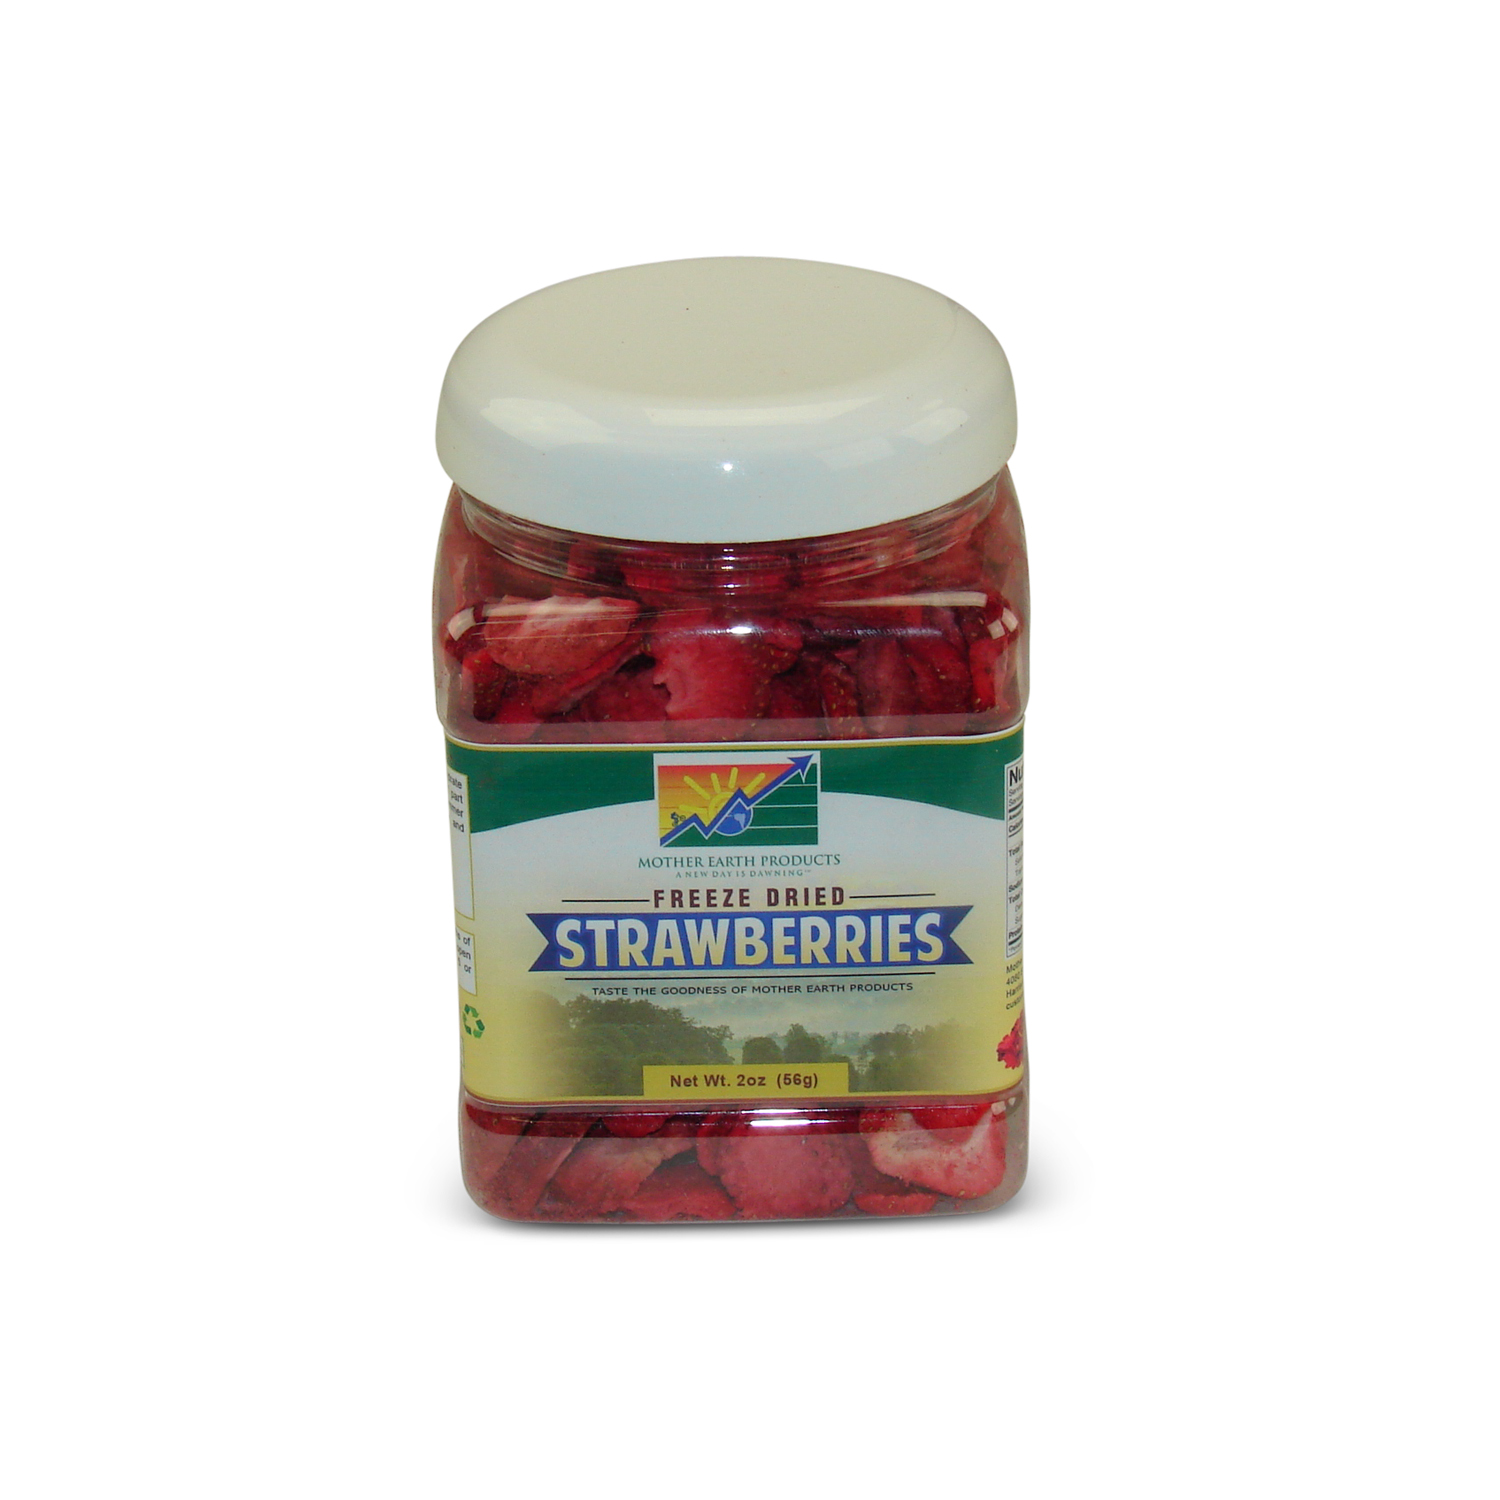 Mother Earth Products Freeze Dried Sliced Strawberries, jar by Mother Earth Products